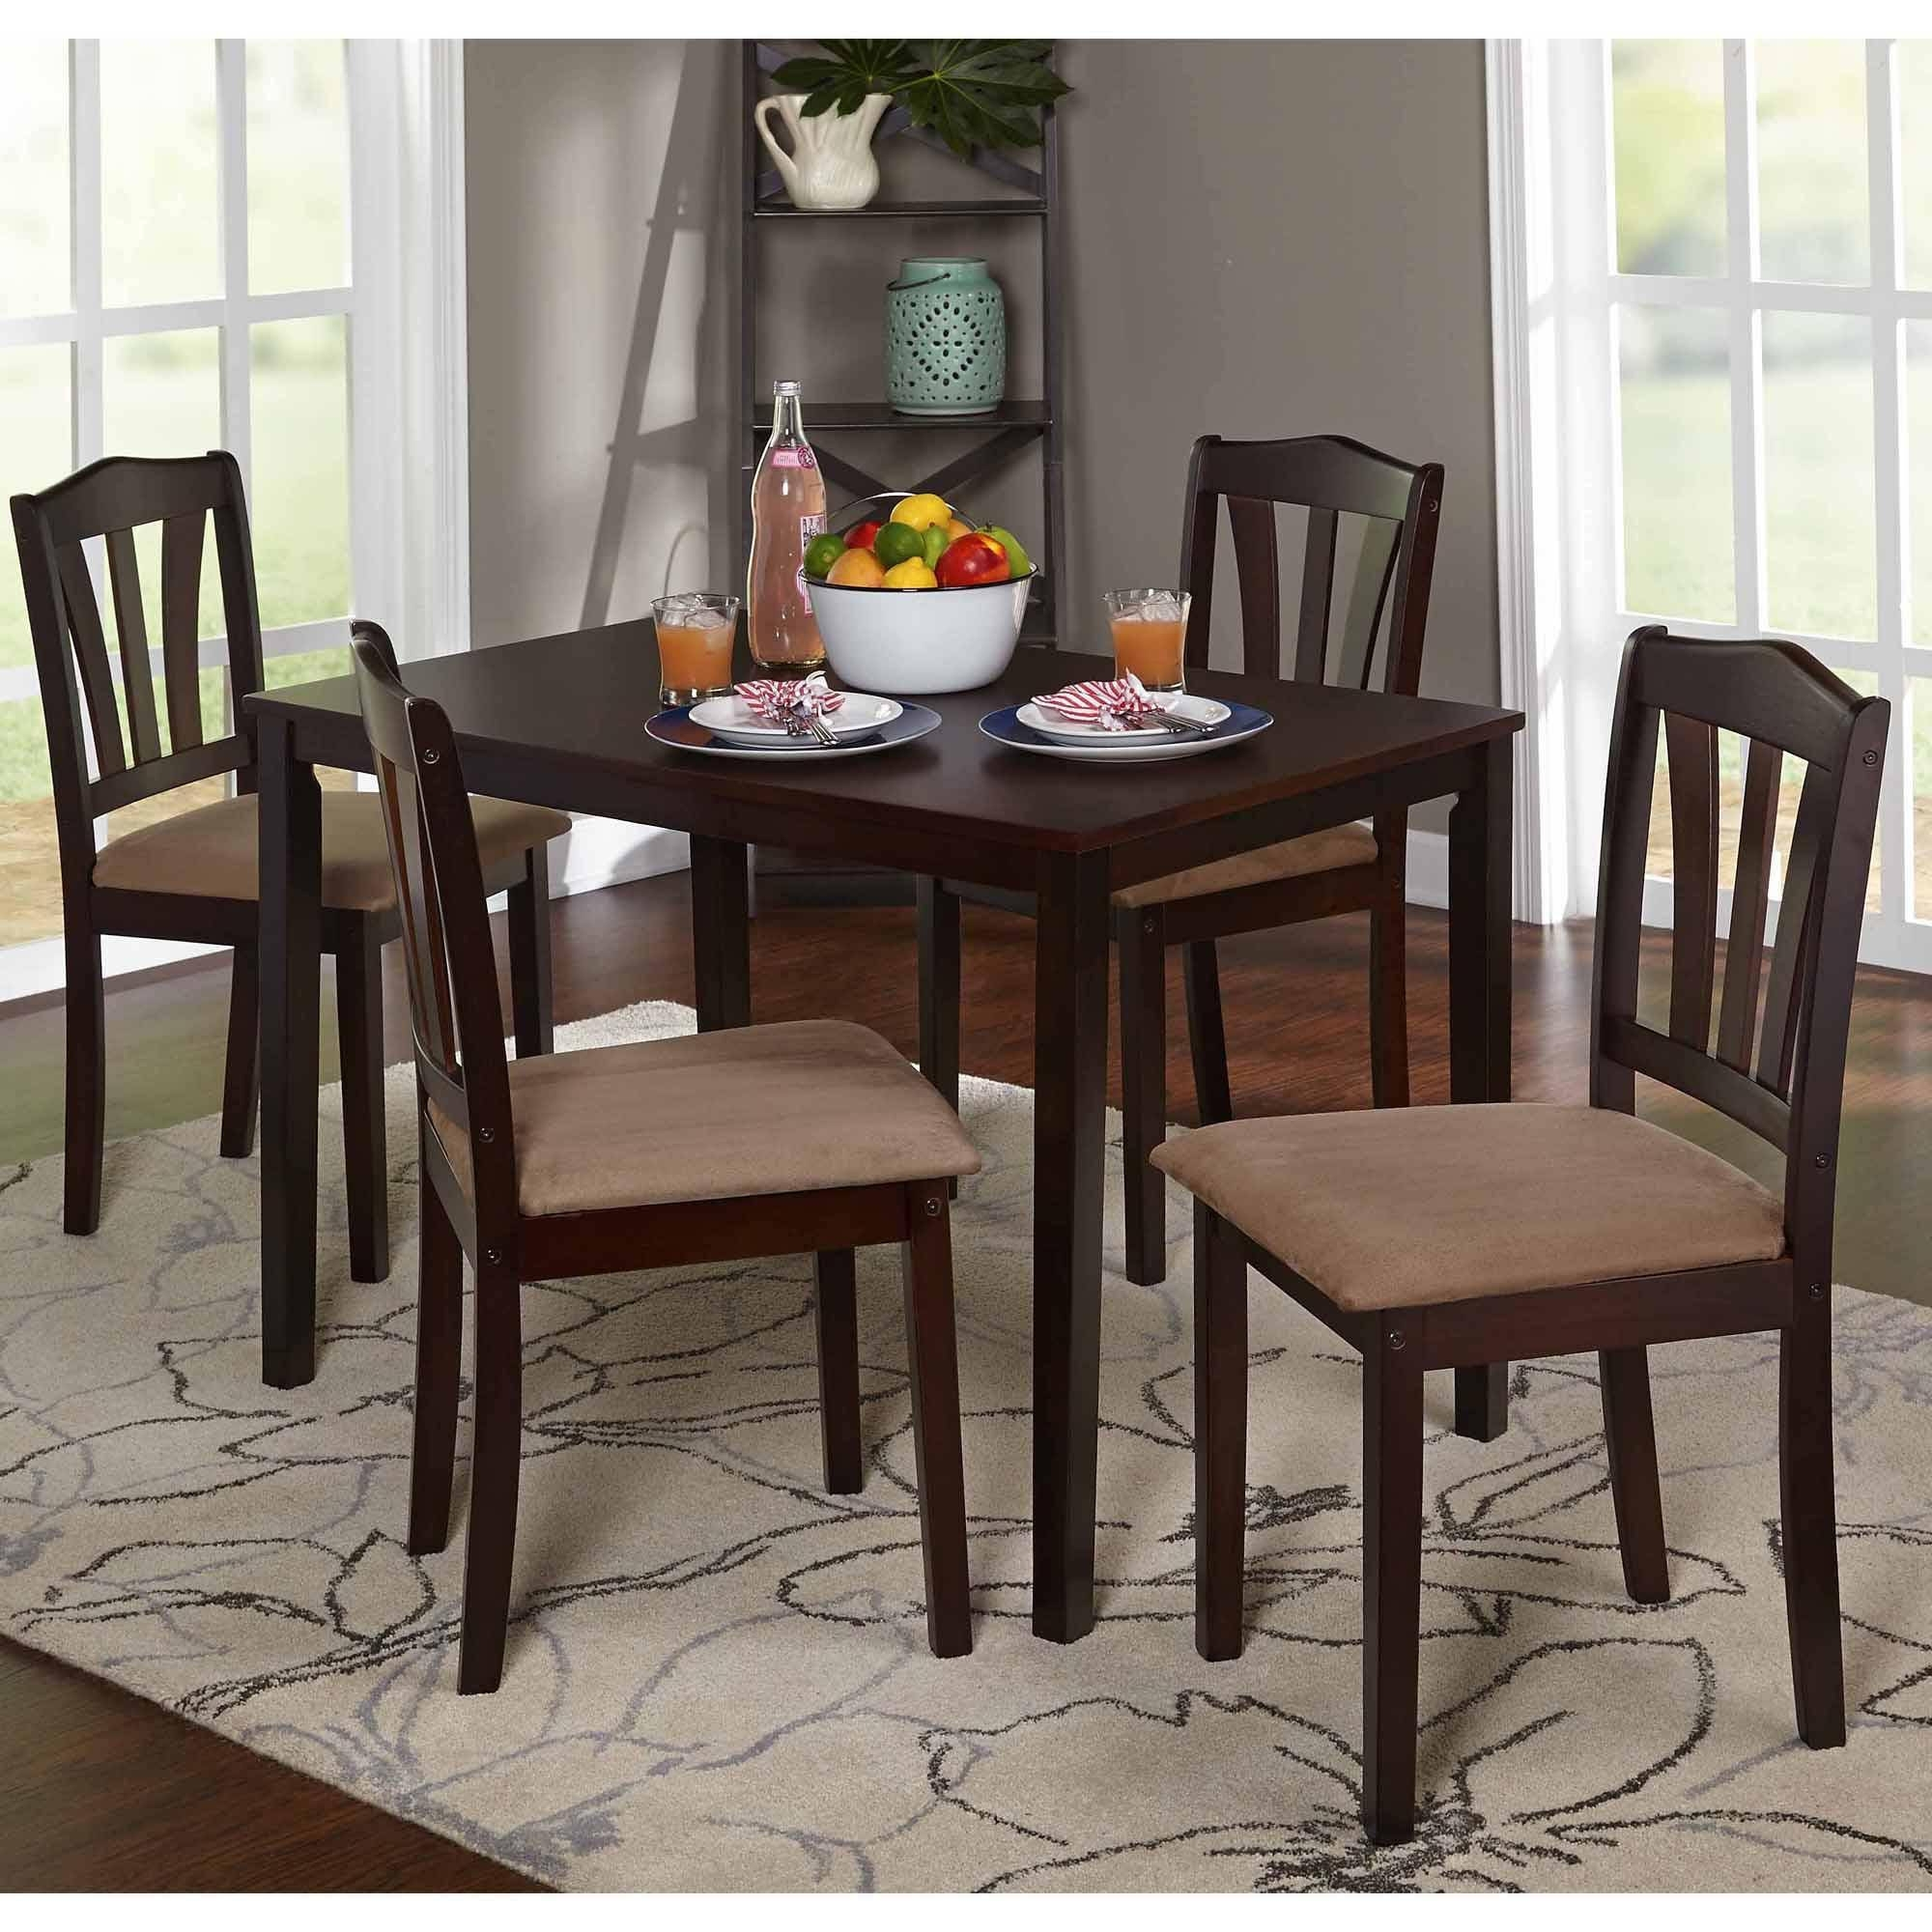 Rectangular Dining Tables Sets For Best And Newest Metropolitan 5 Piece Dining Set, Multiple Colors – Walmart (View 20 of 25)